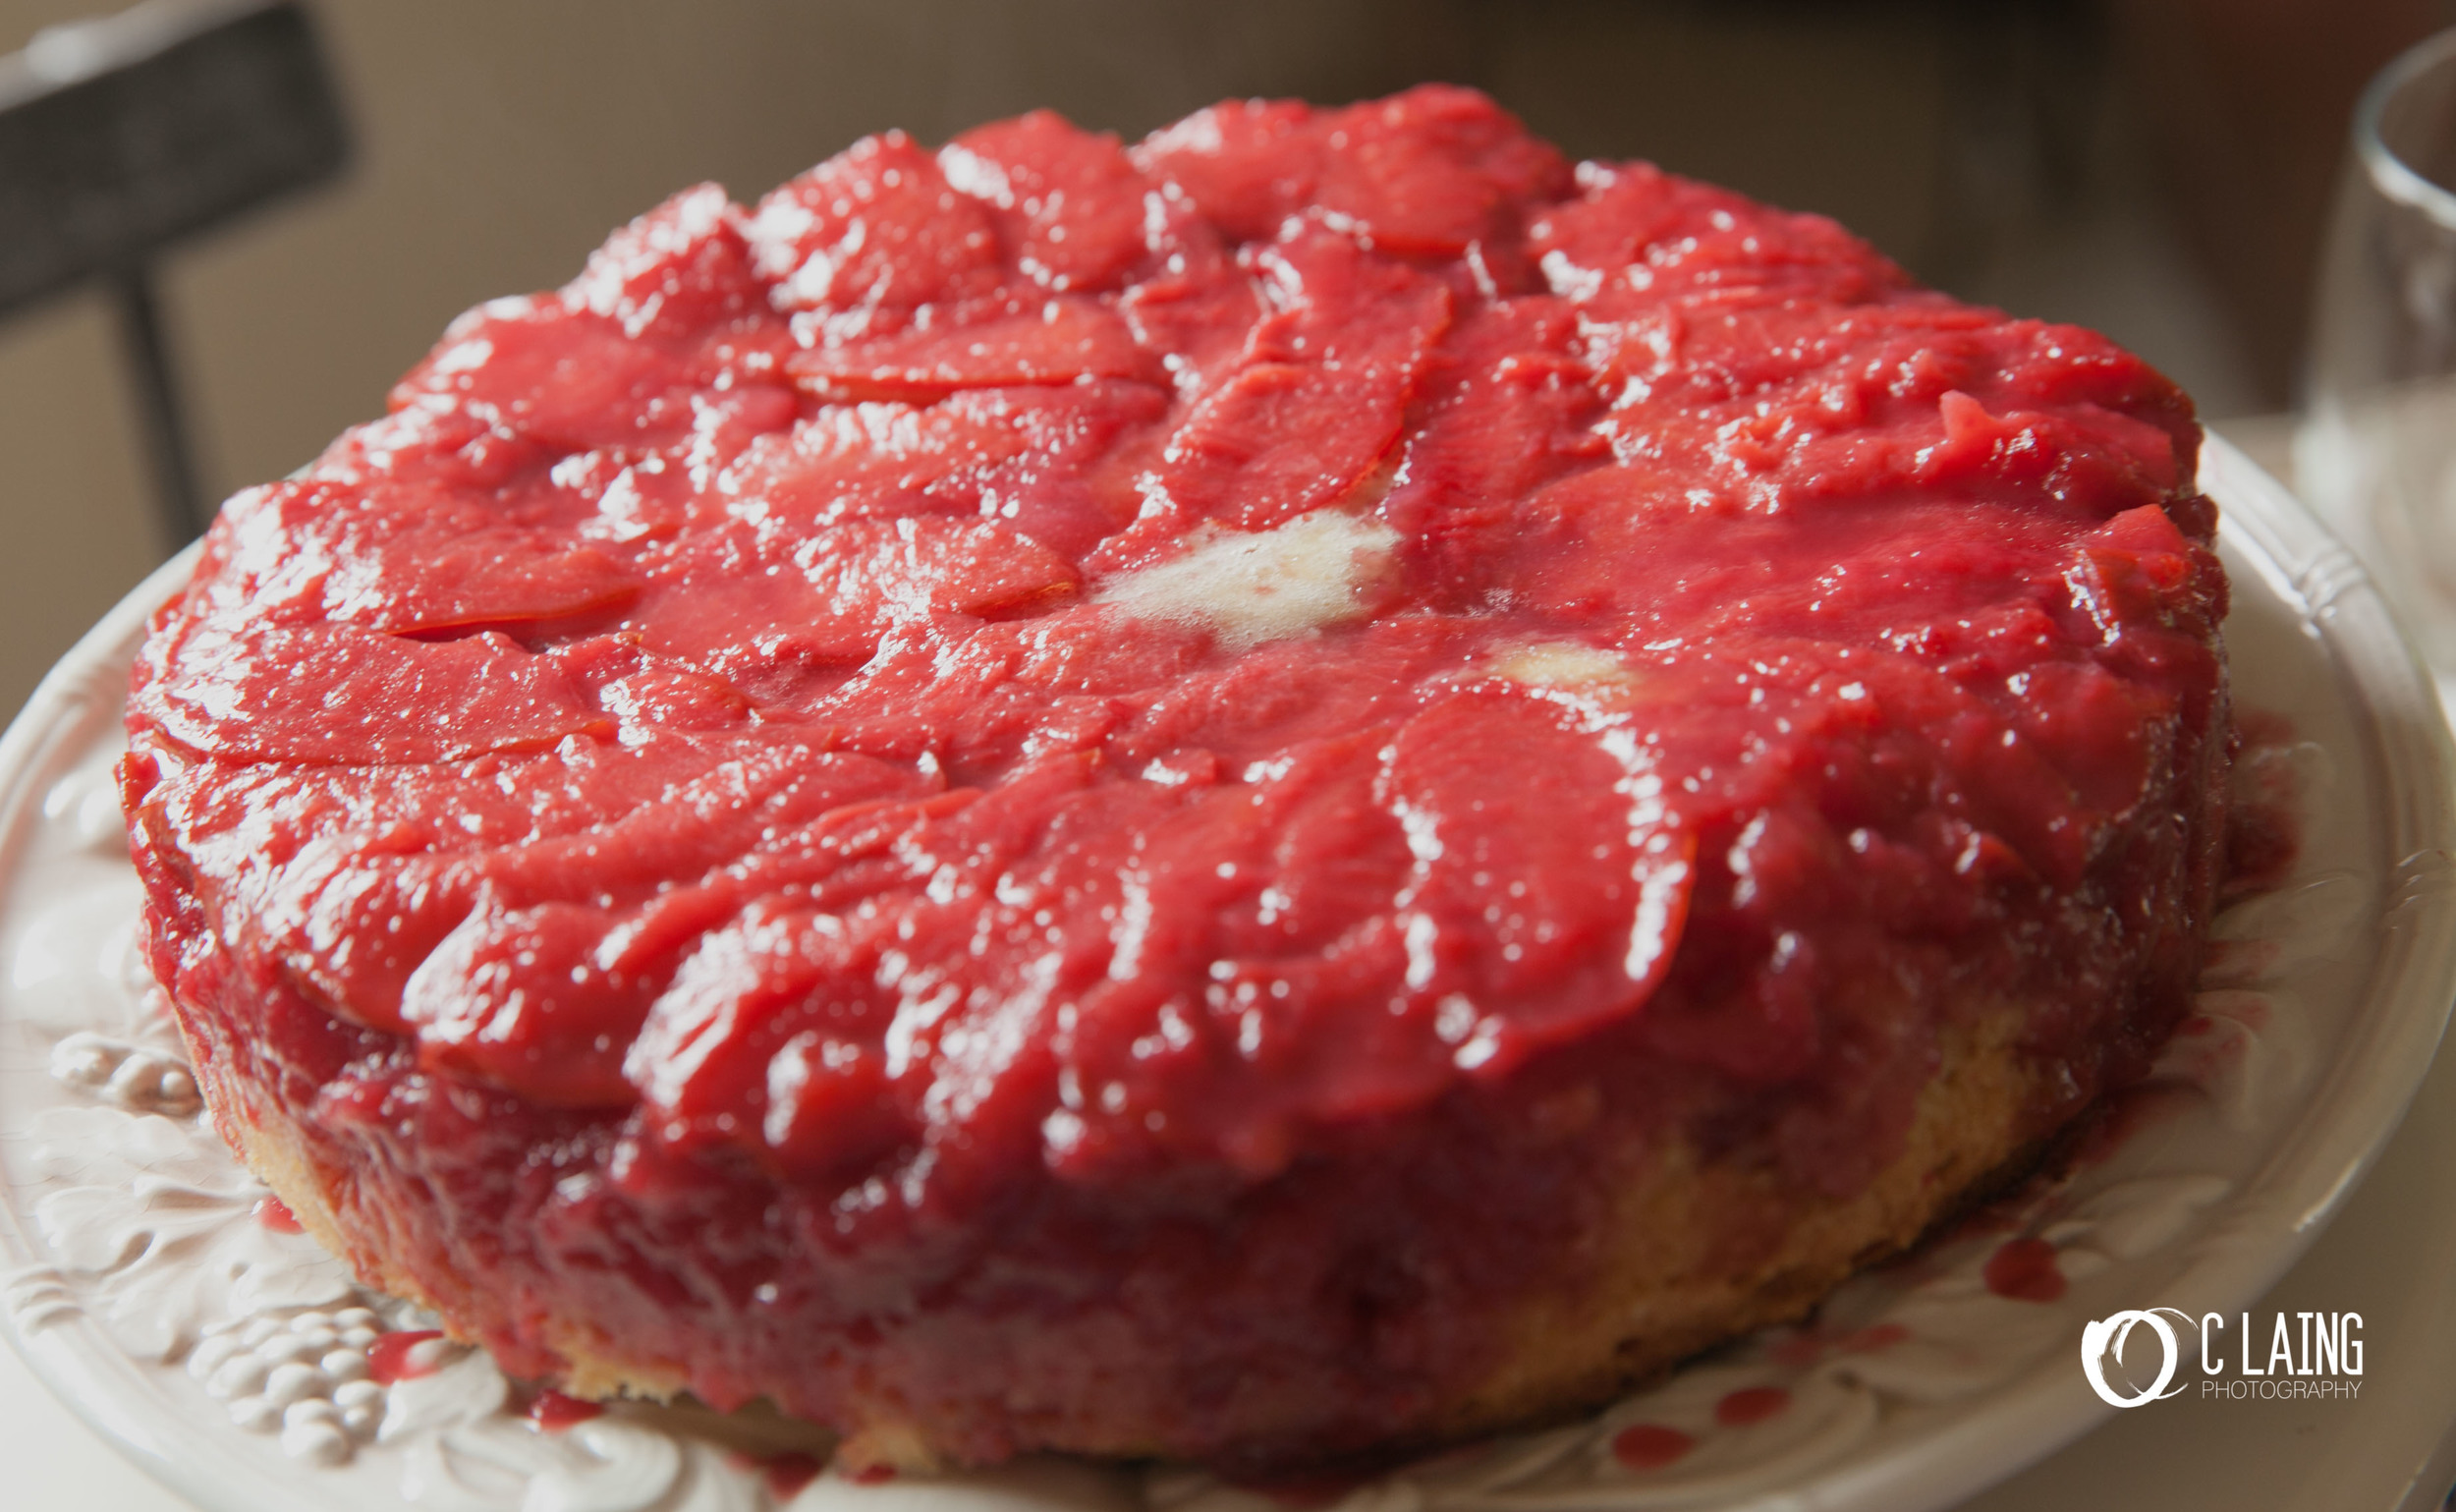 Pluot upside-down cake. I am not a person who eats sweets, but so I have been told.... it was delicious!